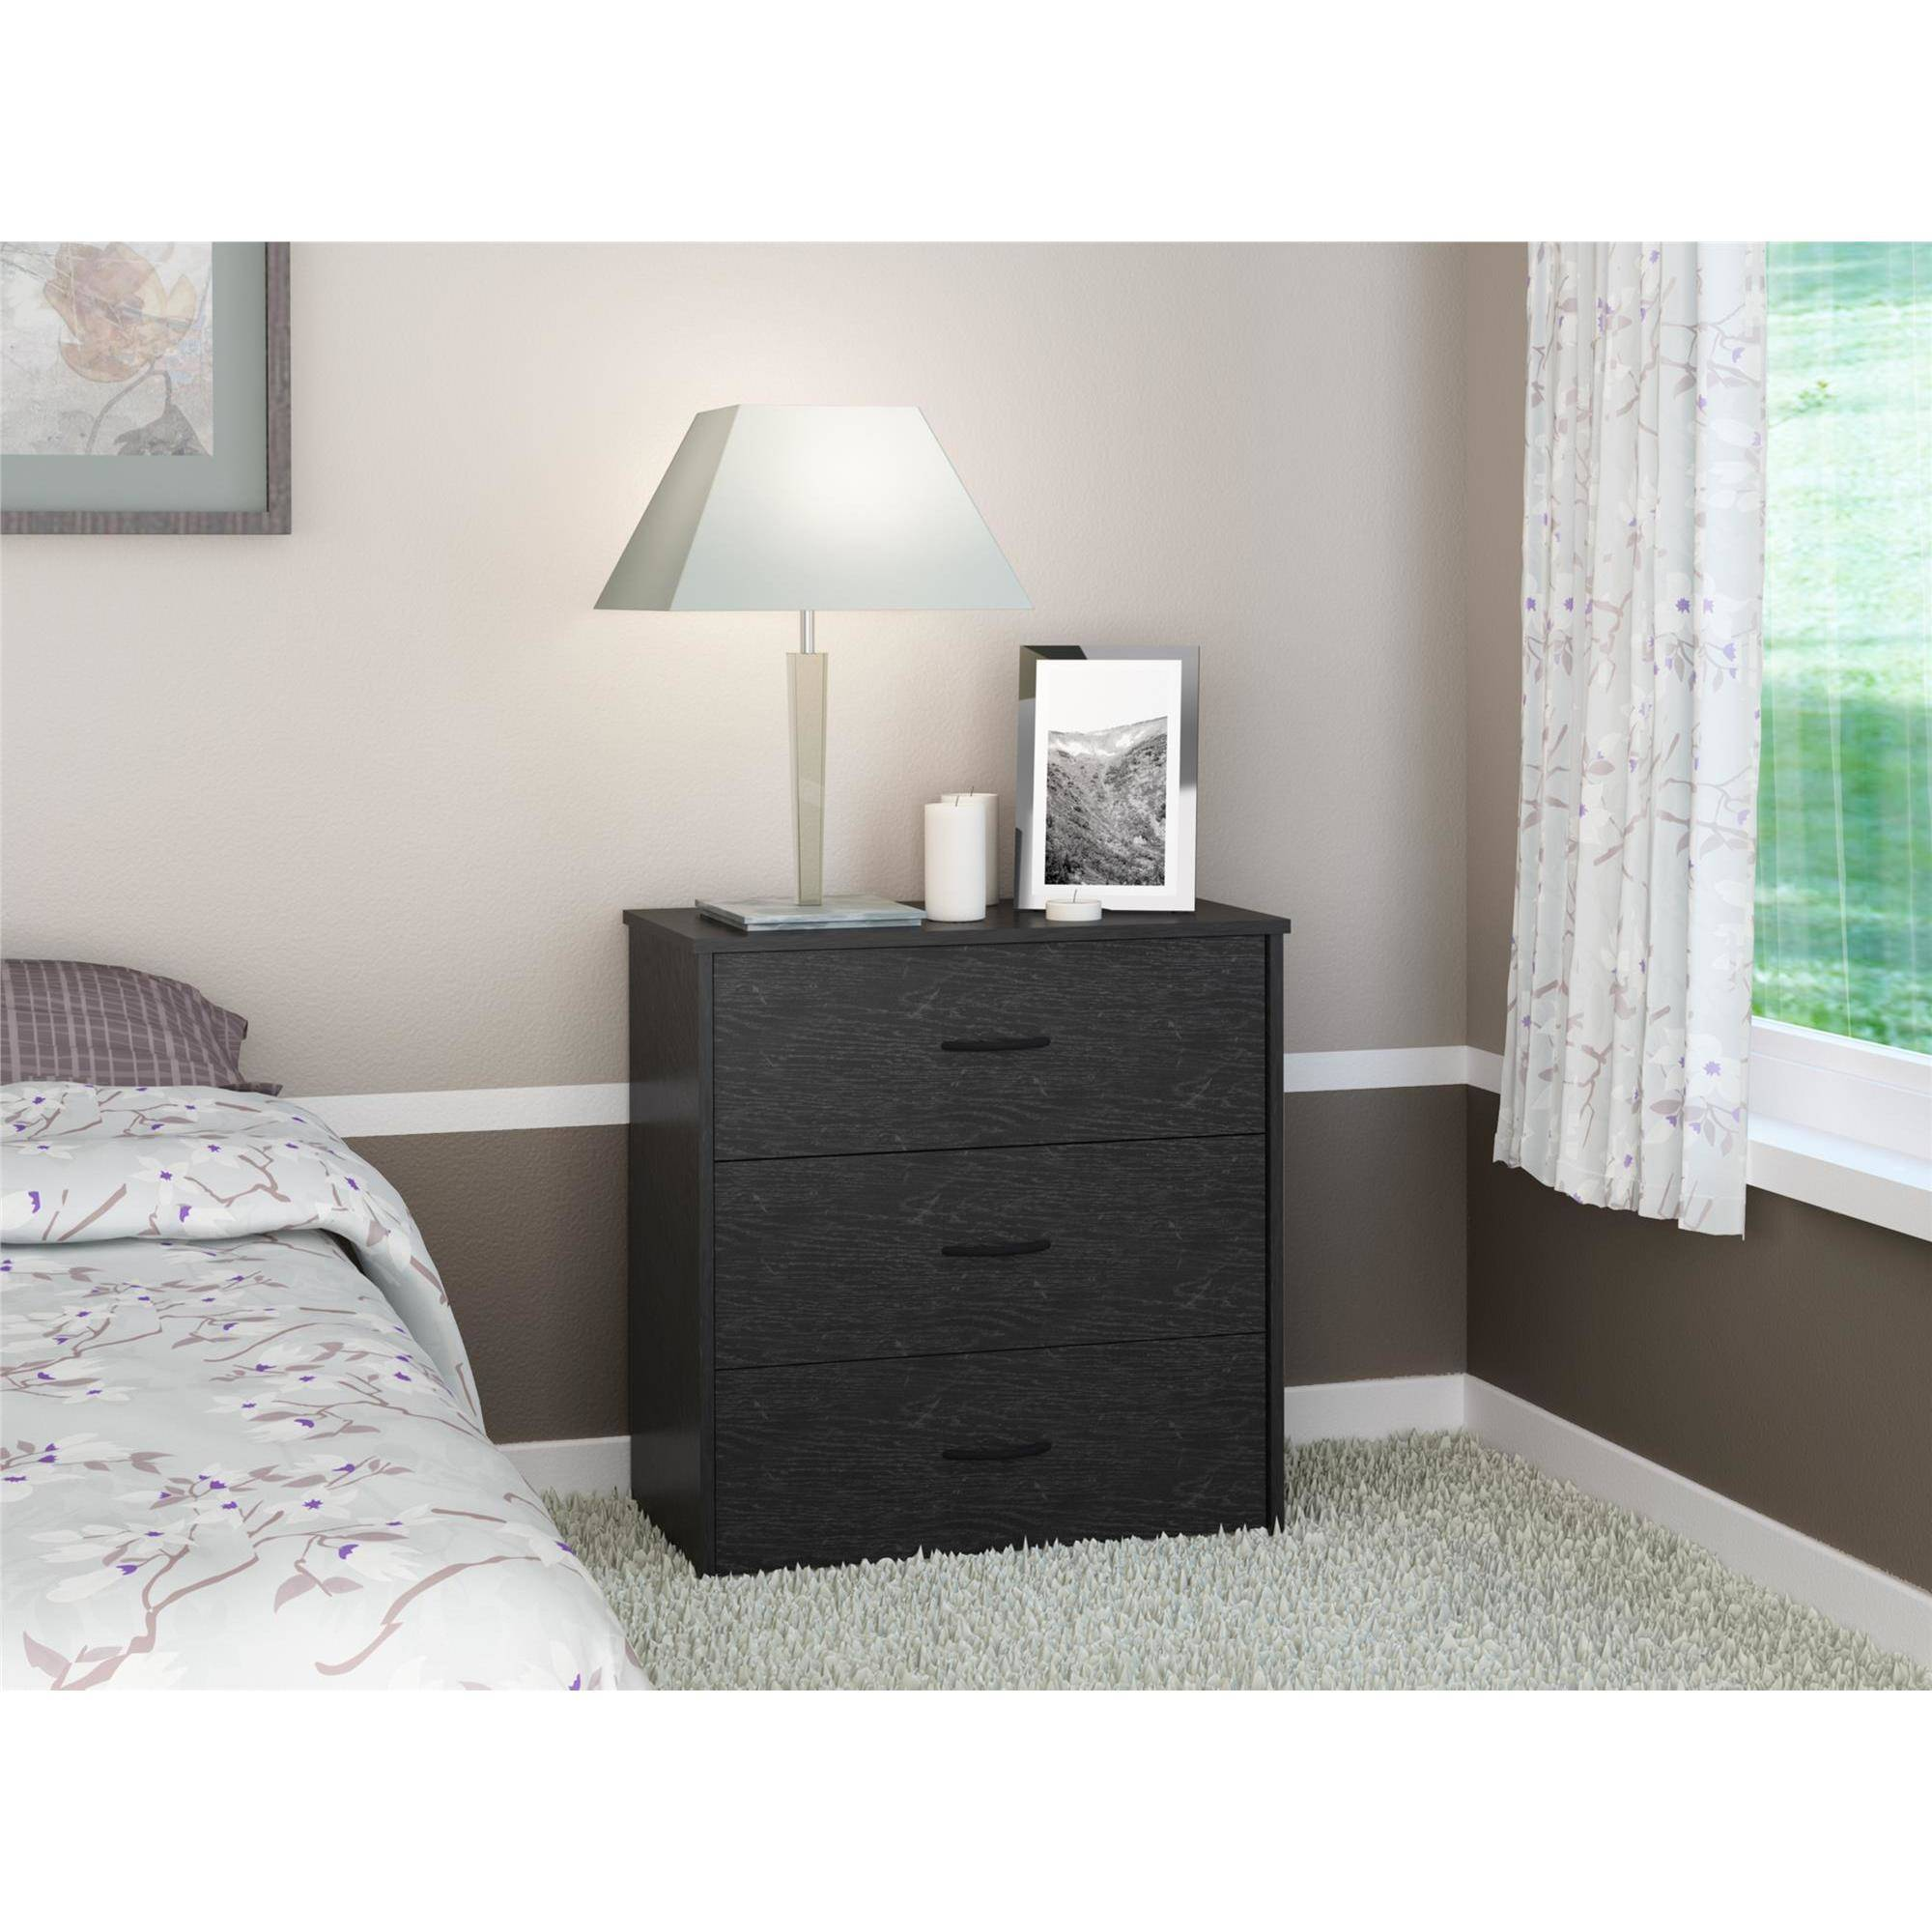 Mainstays 3-Drawer Dresser Multiple Colors - Walmart.com